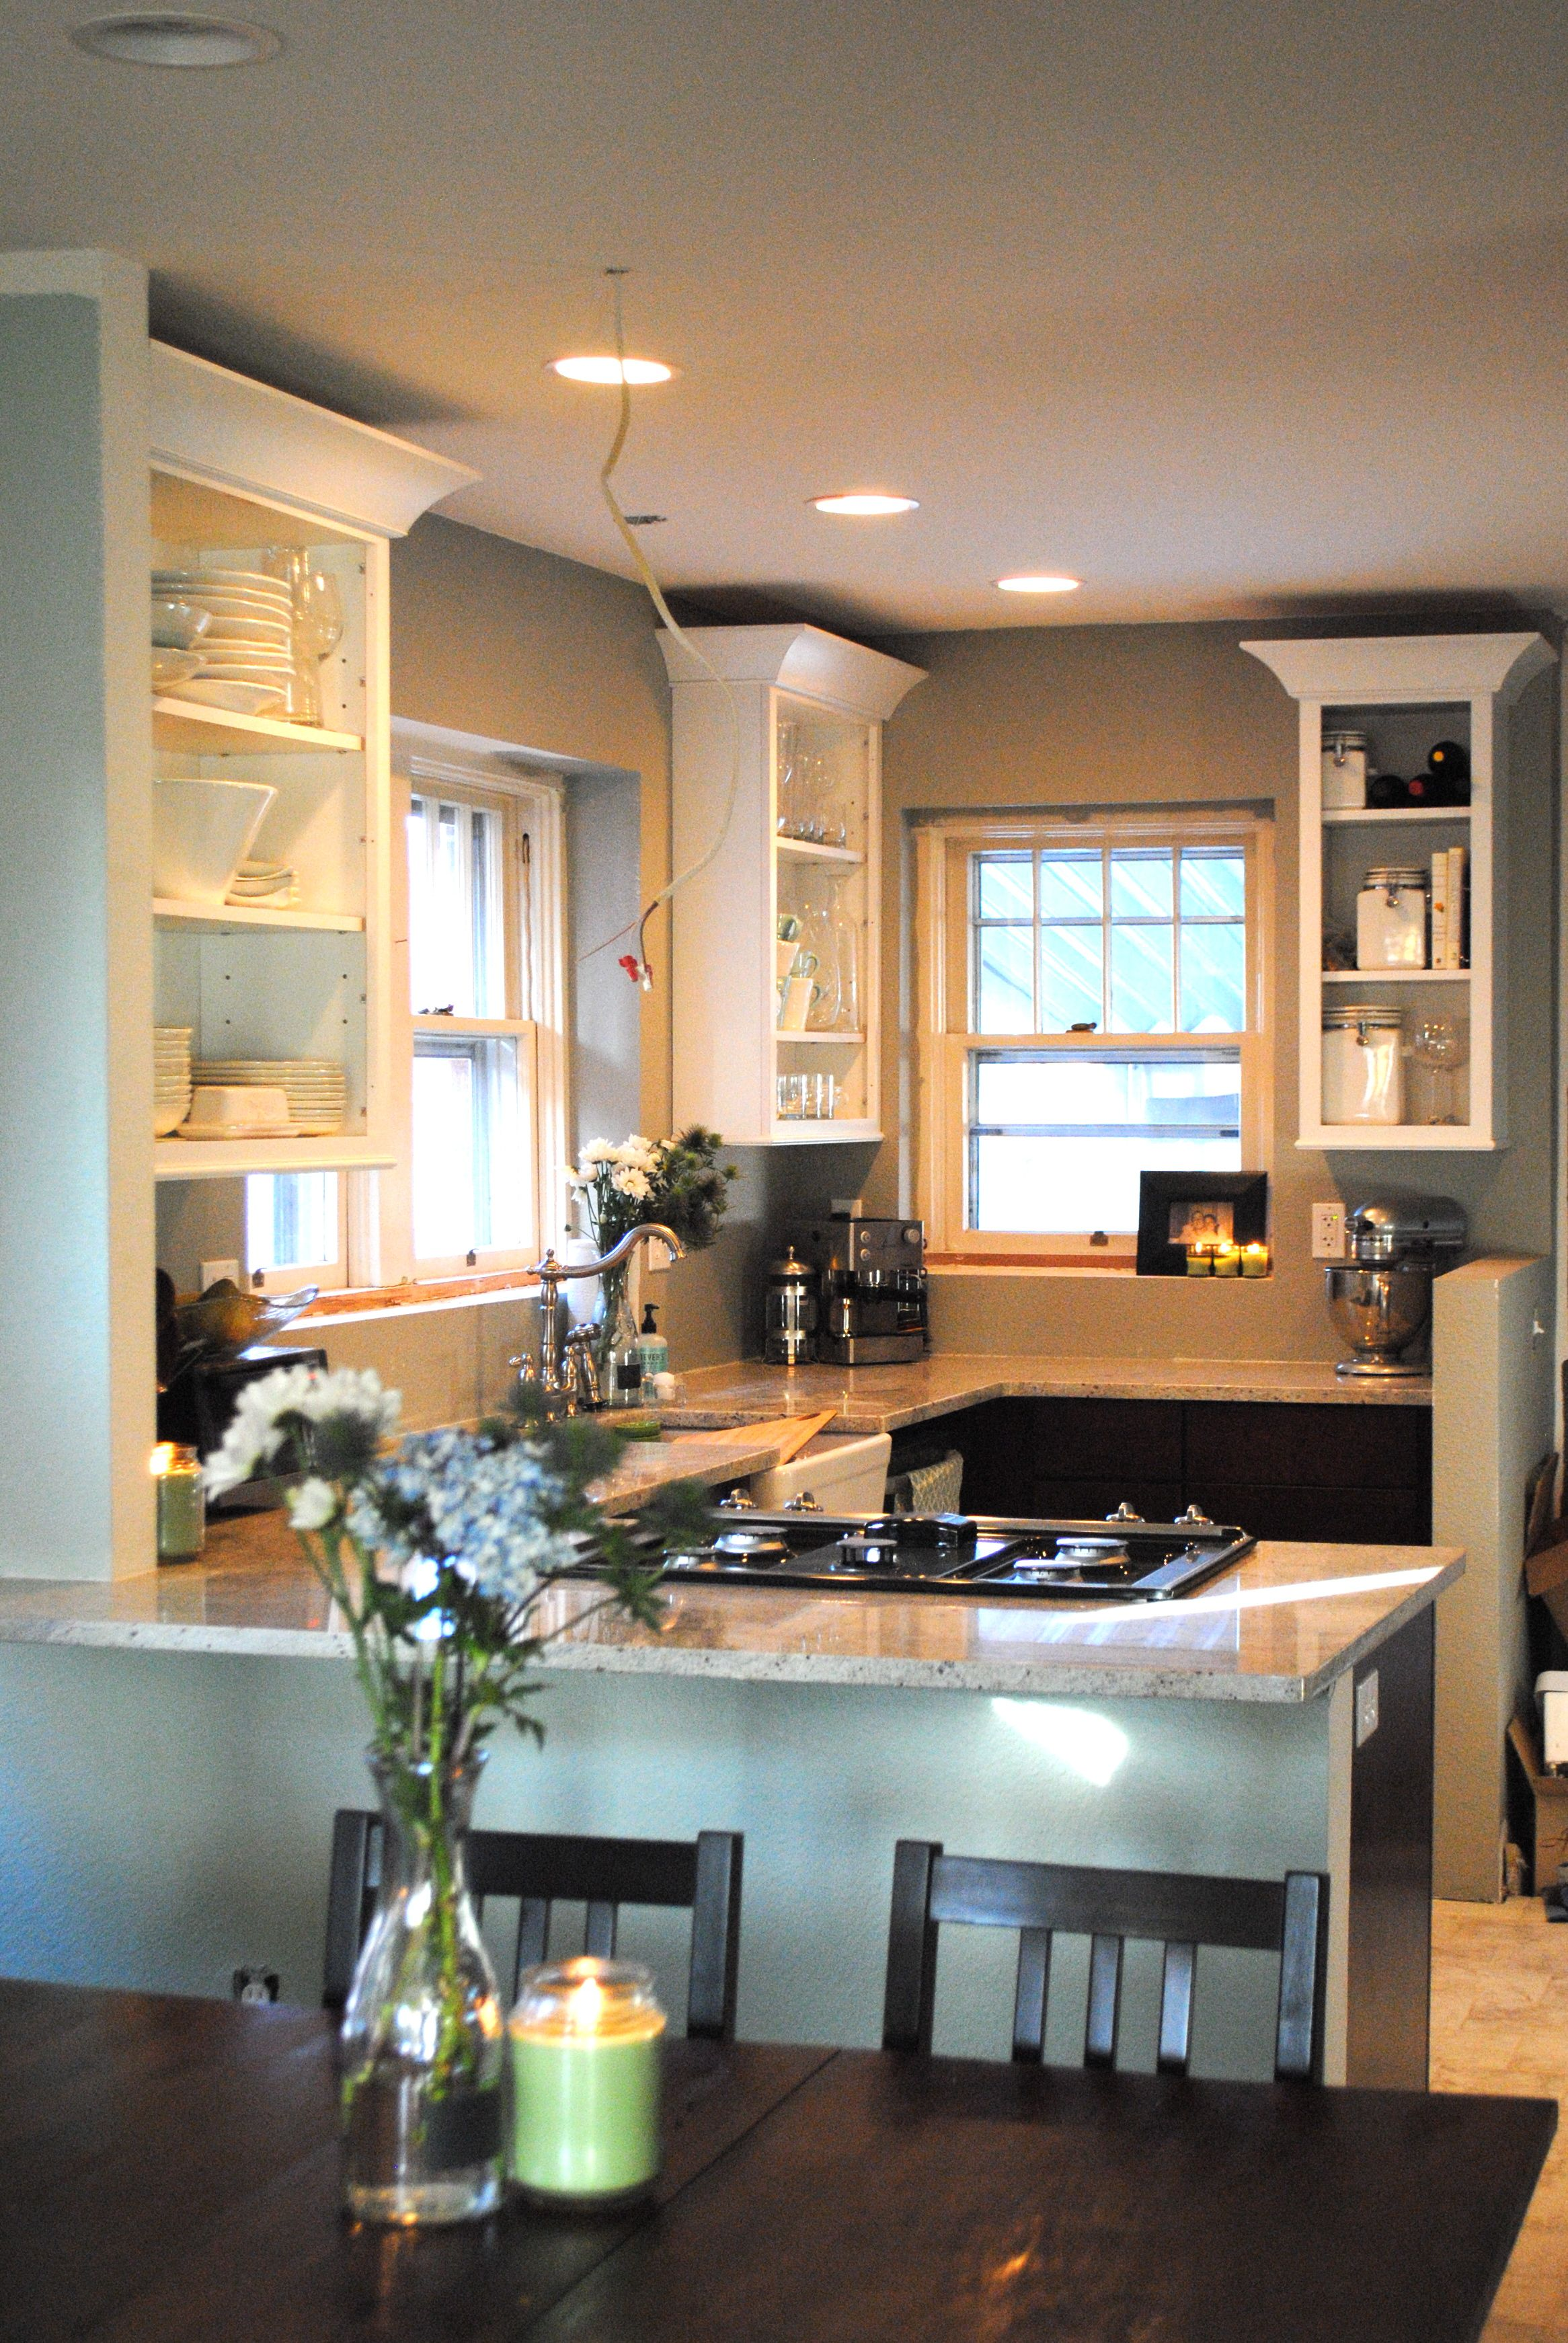 Bungalow Kitchen Bungalow Remodel To Open Up Kitchen With An Island Note Back